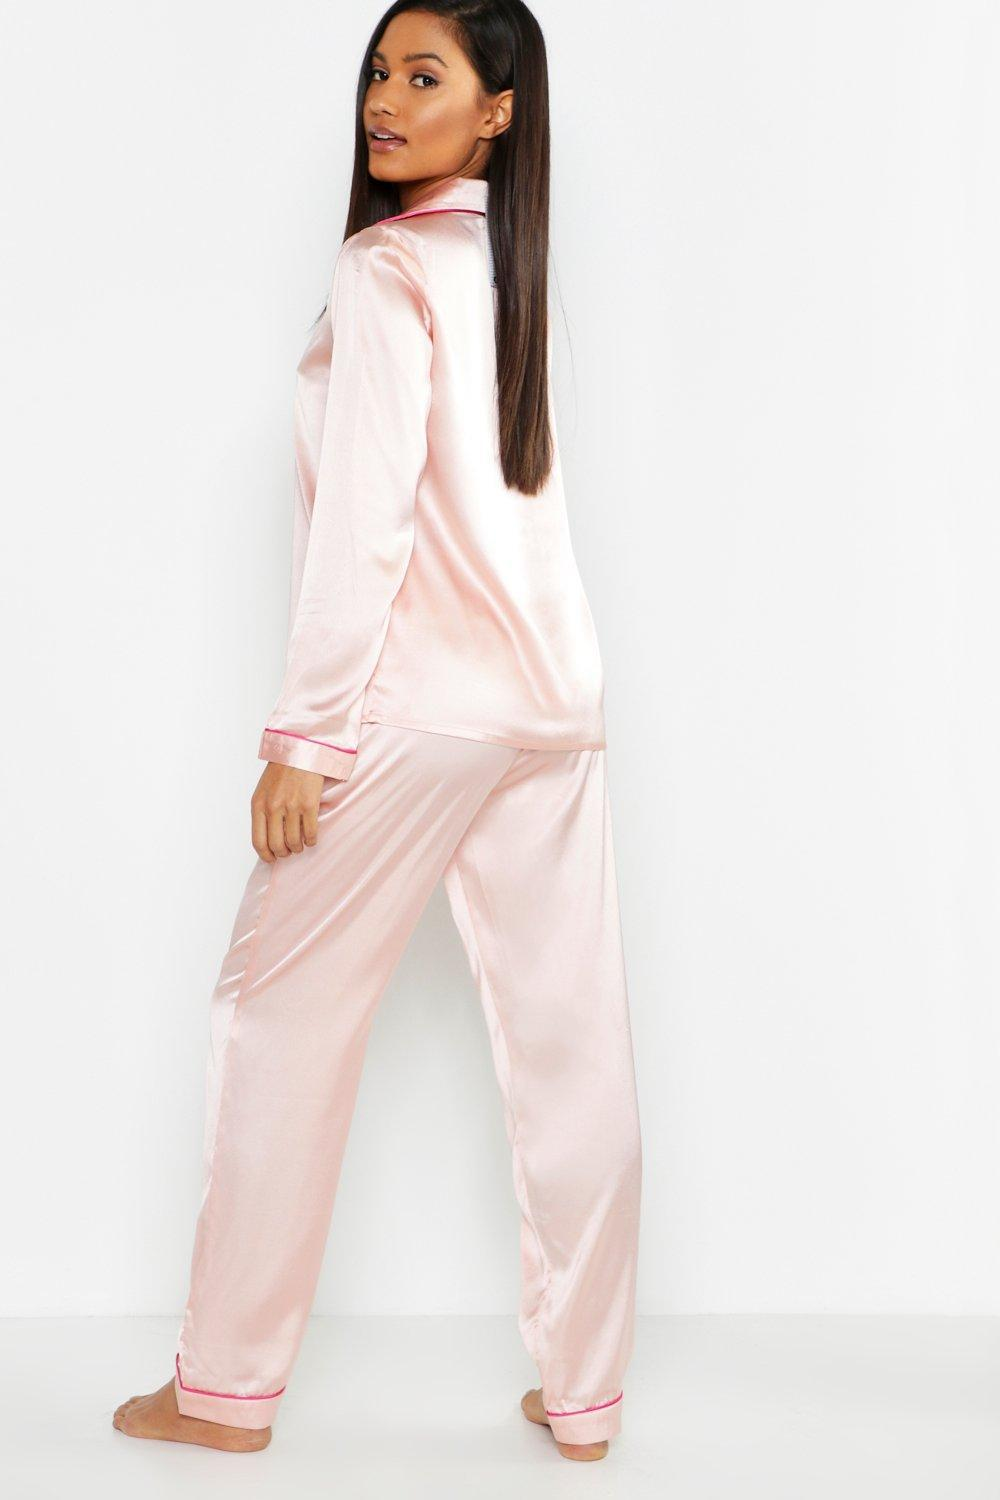 b0a24bd0a9 Boohoo - Pink Satin Button Through Pj Trouser Set - Lyst. View fullscreen